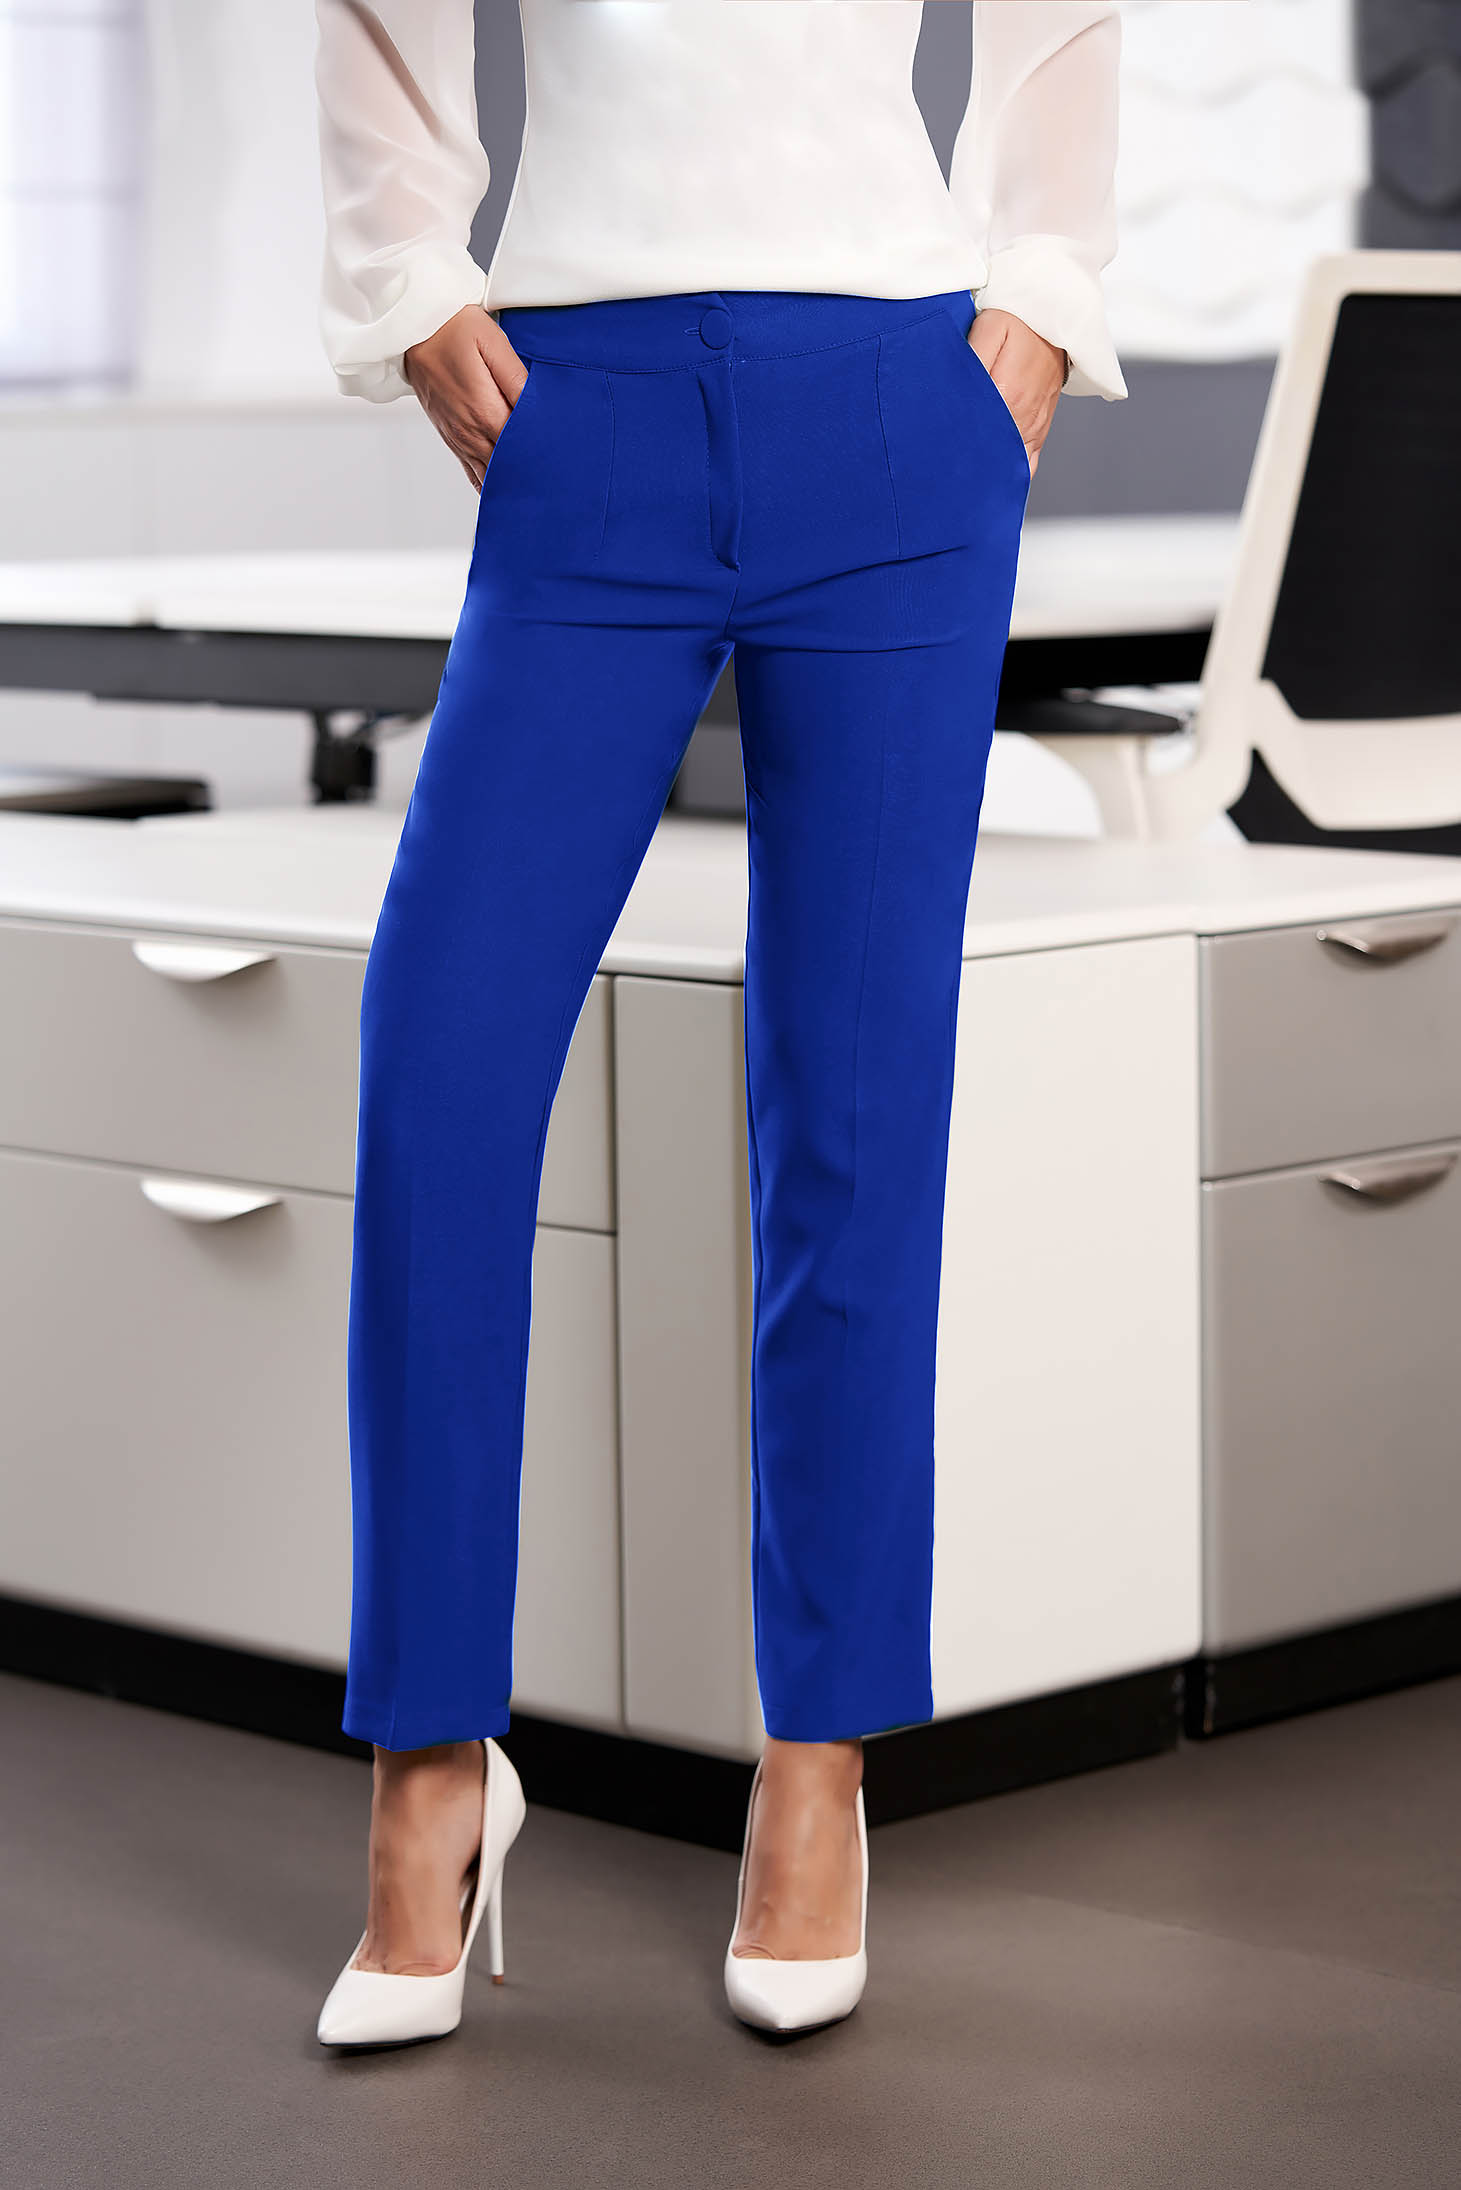 StarShinerS blue office trousers with pockets medium waist slightly elastic fabric with straight cut